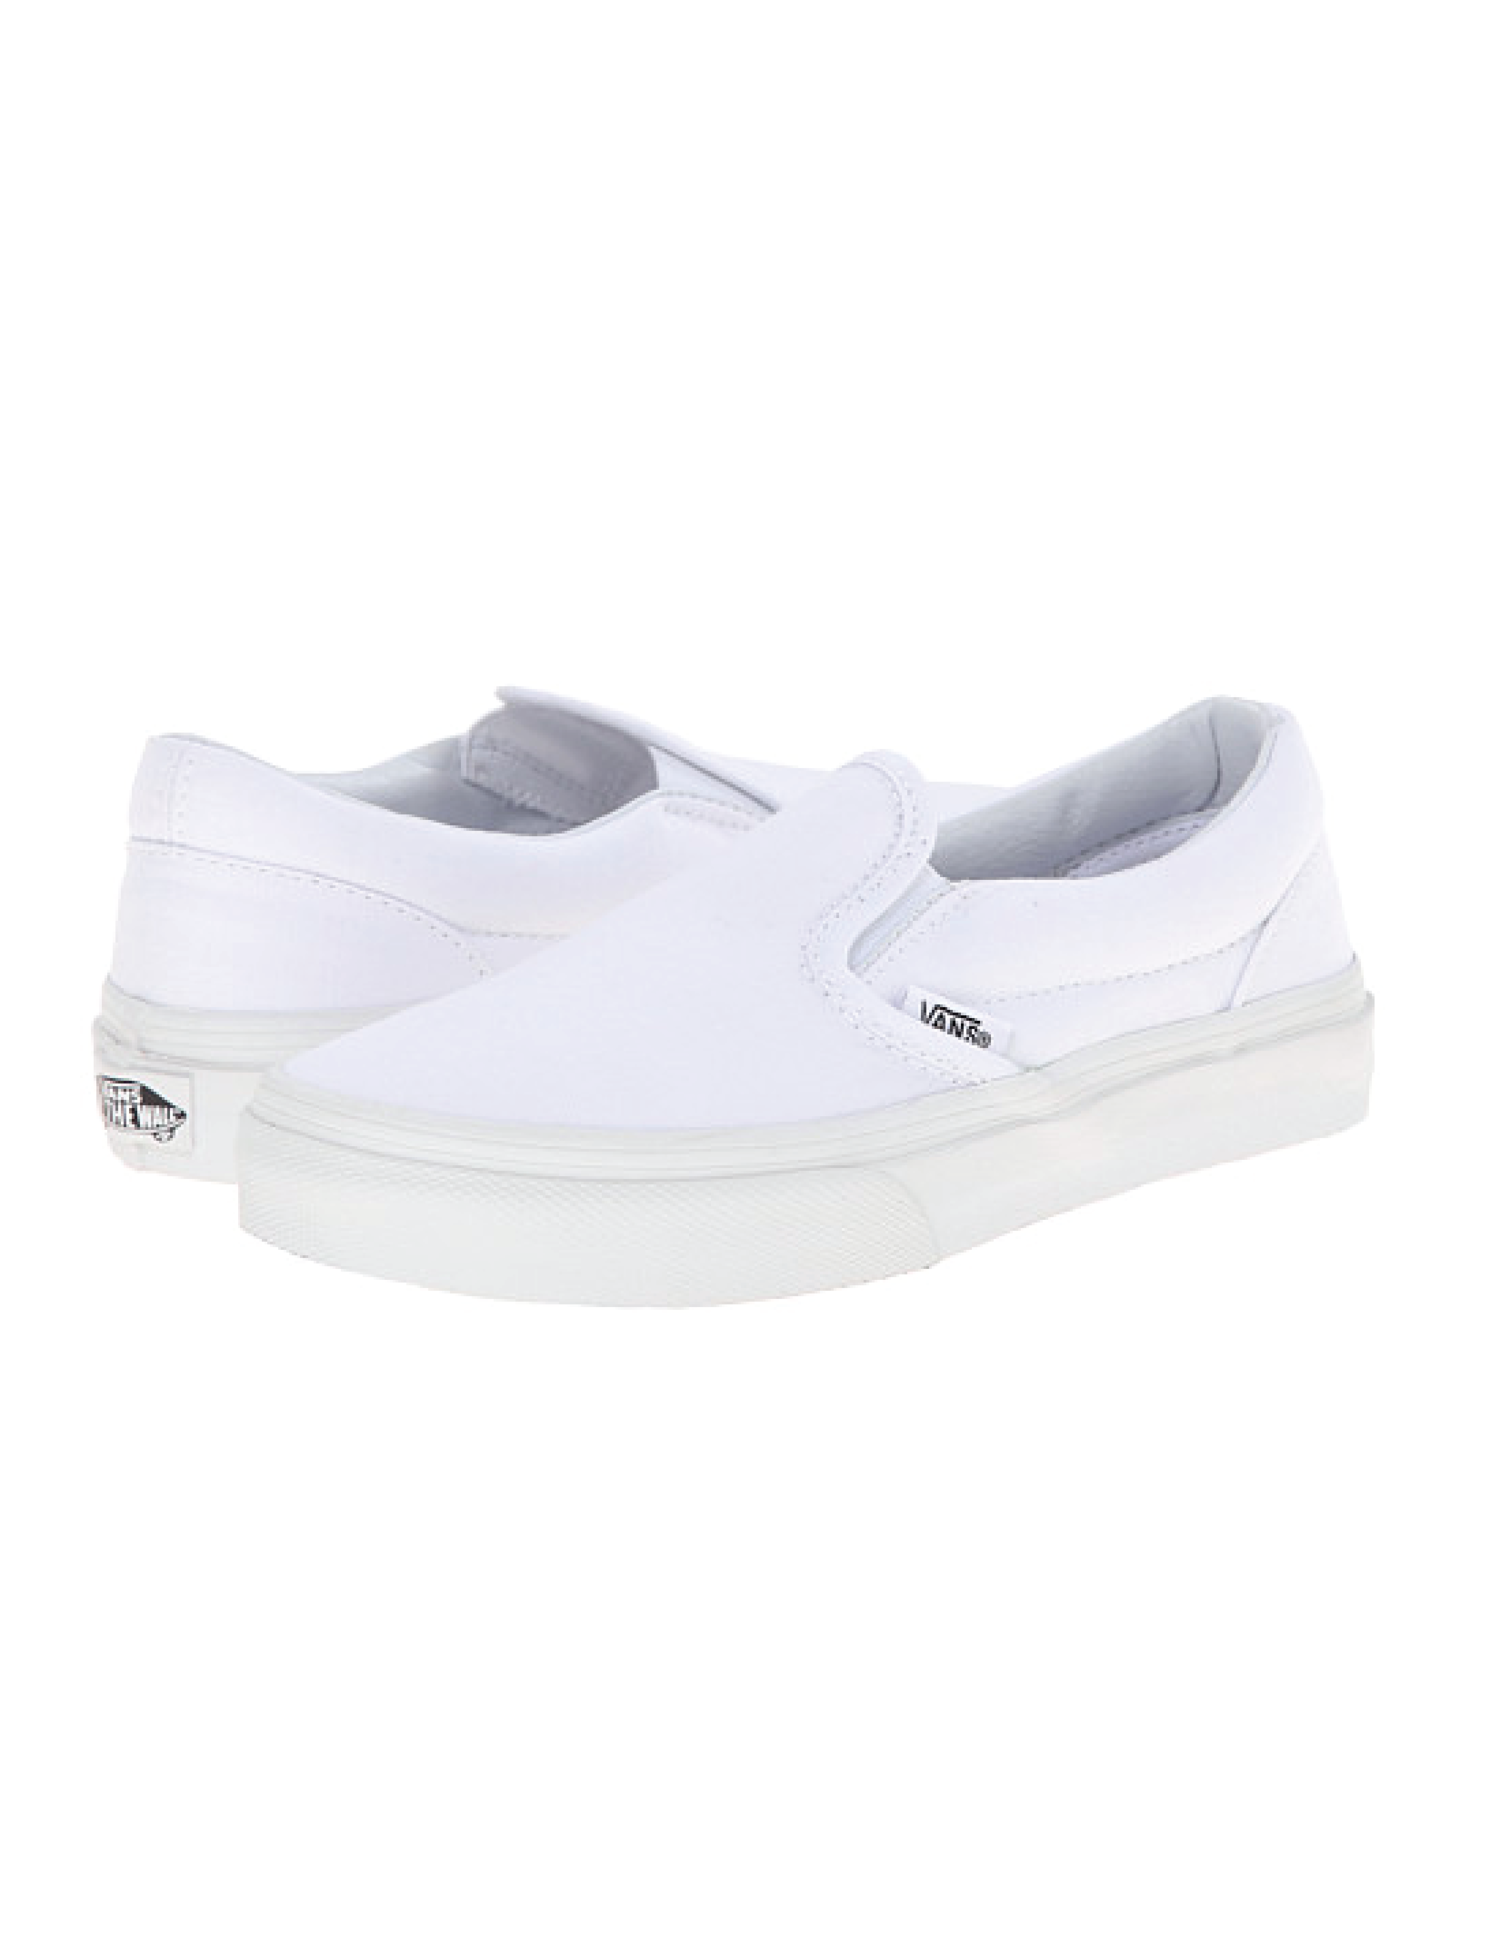 White Vans Png (100+ images in Collection) Page 2.